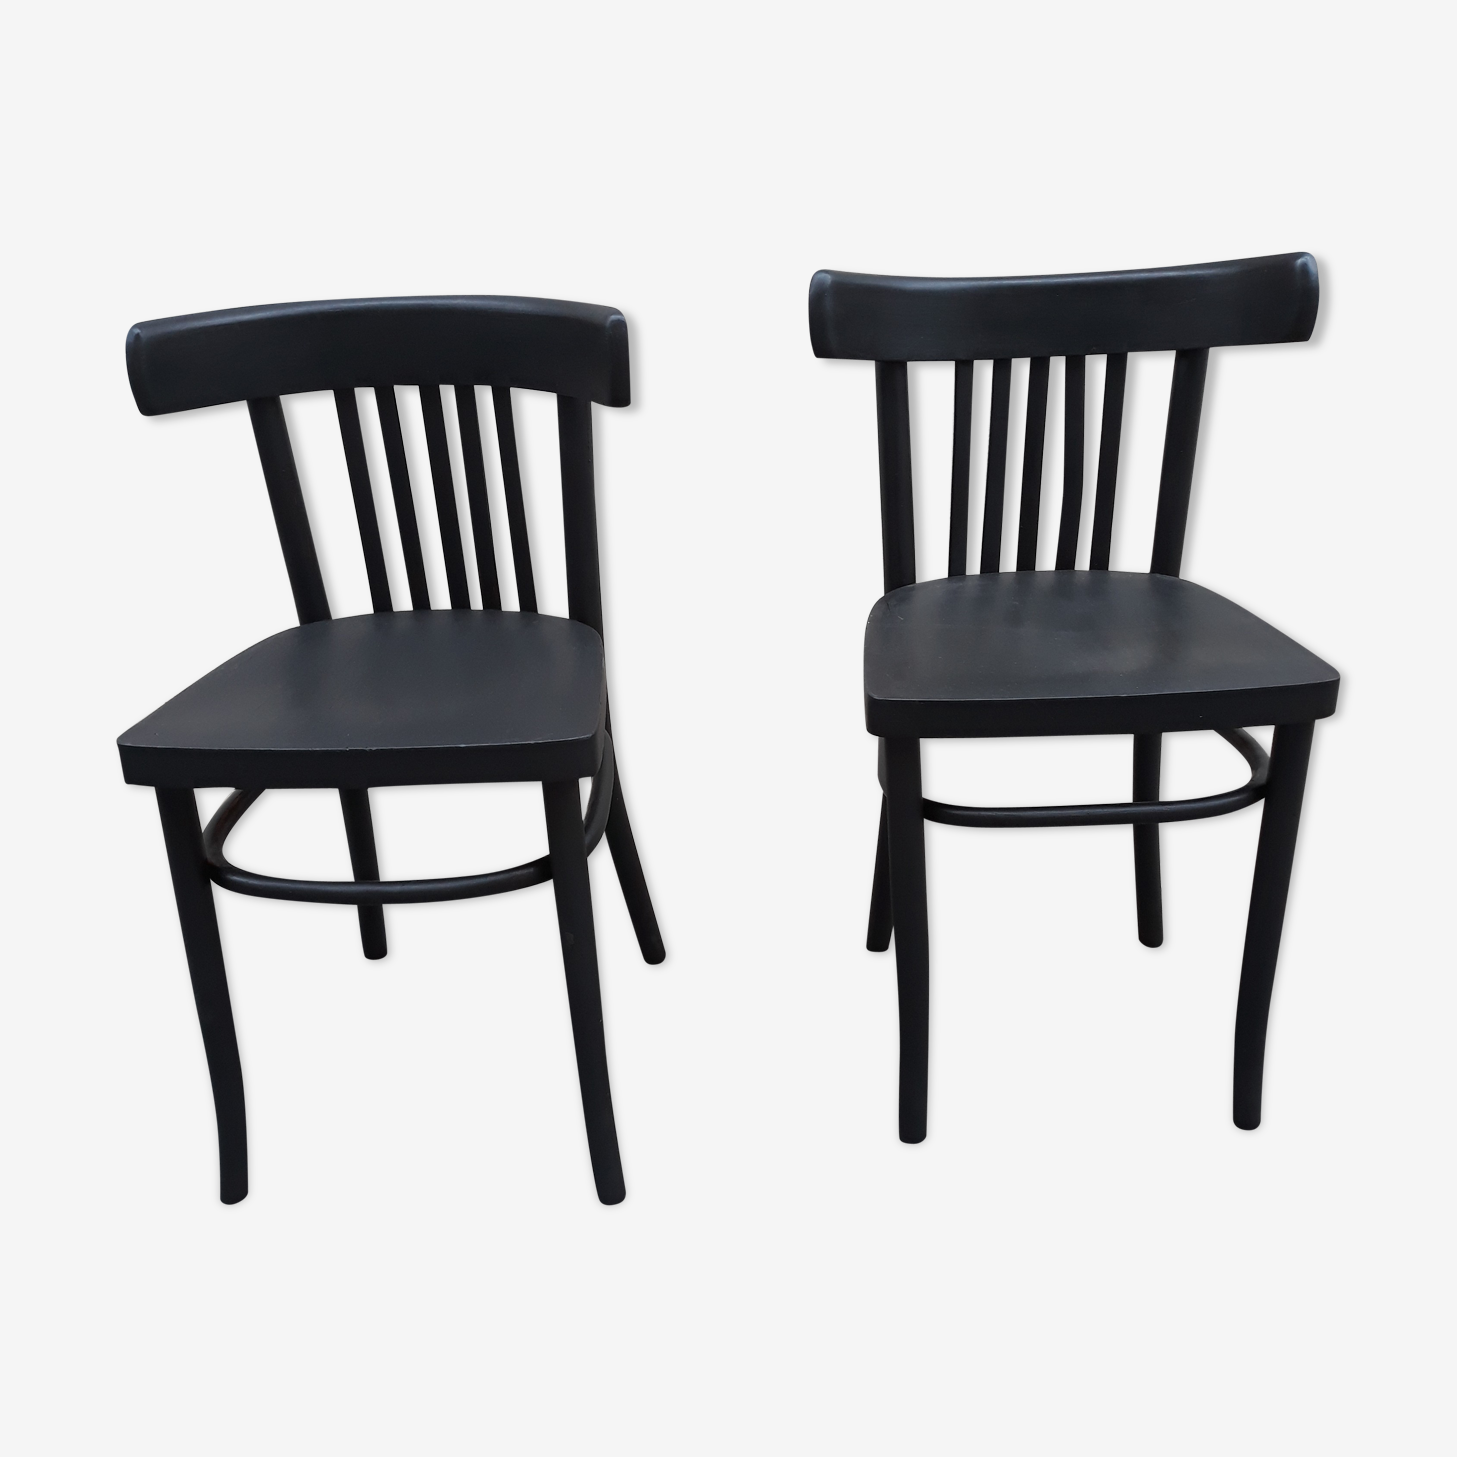 Pair of vintage bistro chairs